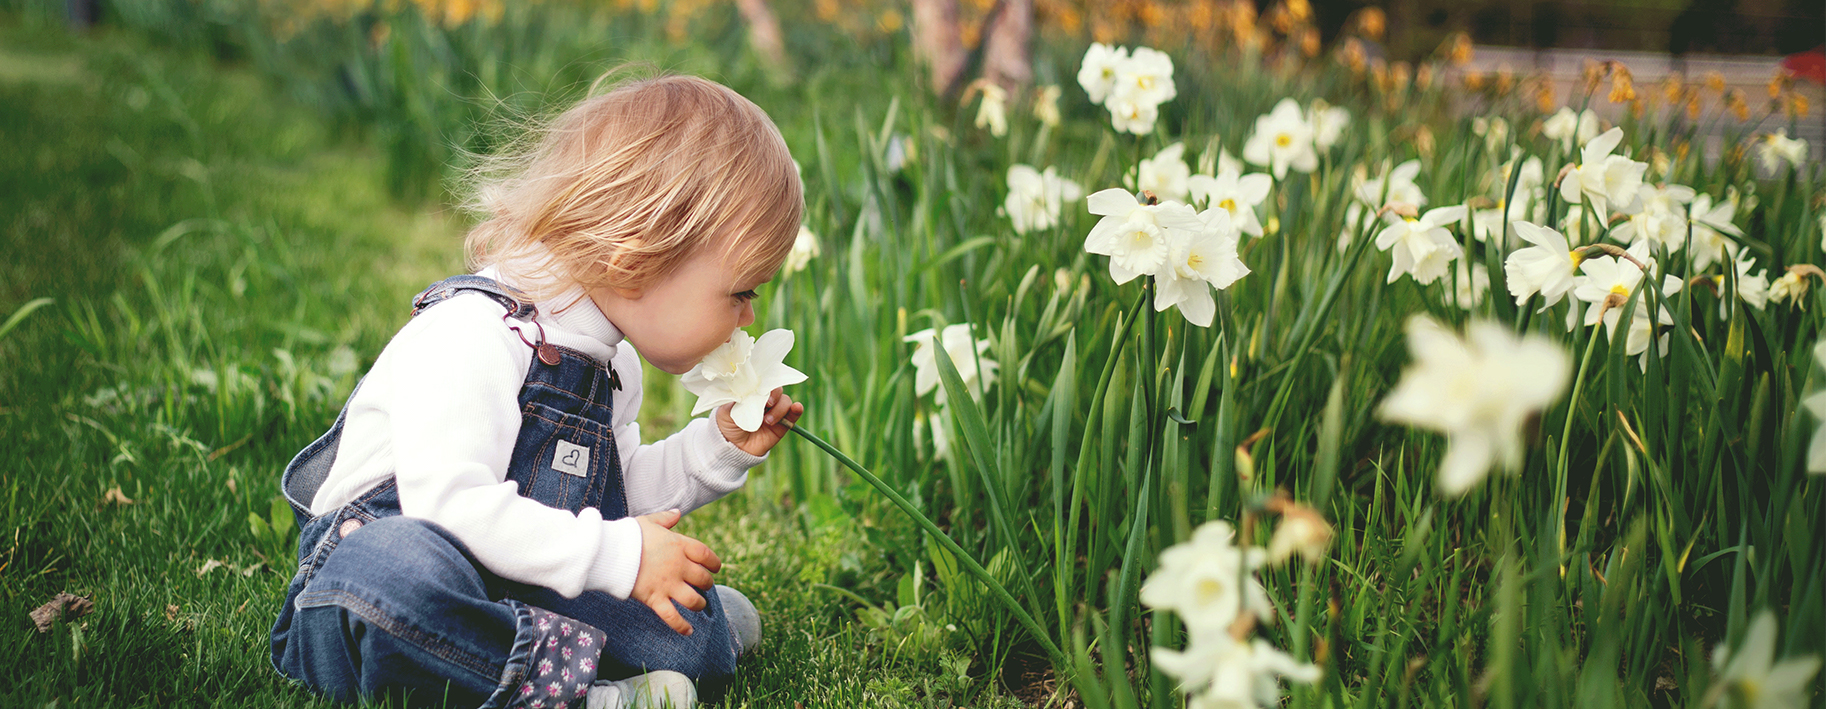 Young Girl playing in flowers